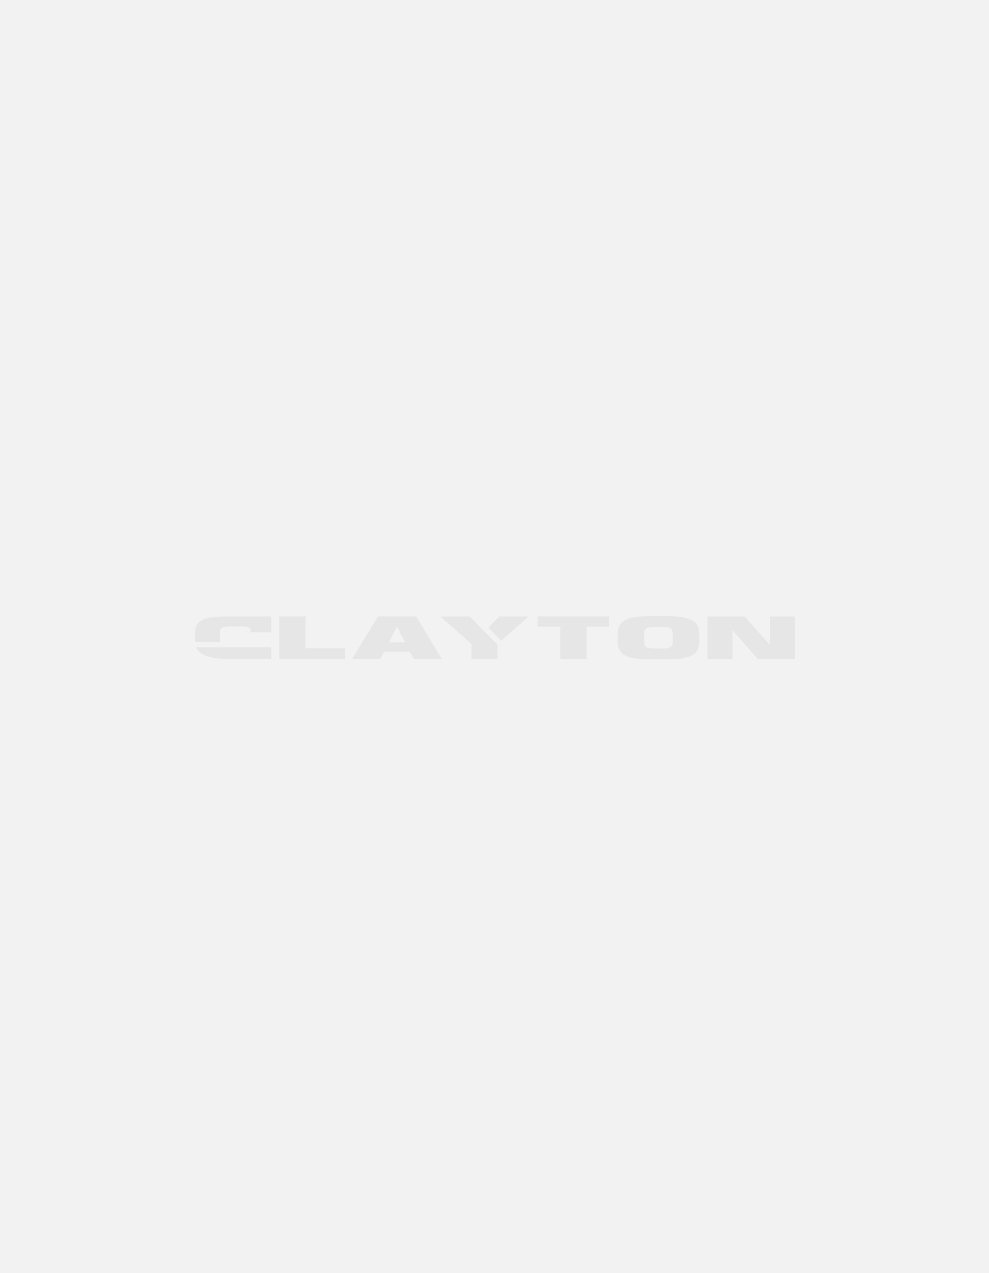 https://www.claytonitalia.com/media/catalog/product/cache/2/small_image/460x590/9df78eab33525d08d6e5fb8d27136e95/2/0/20.jpg